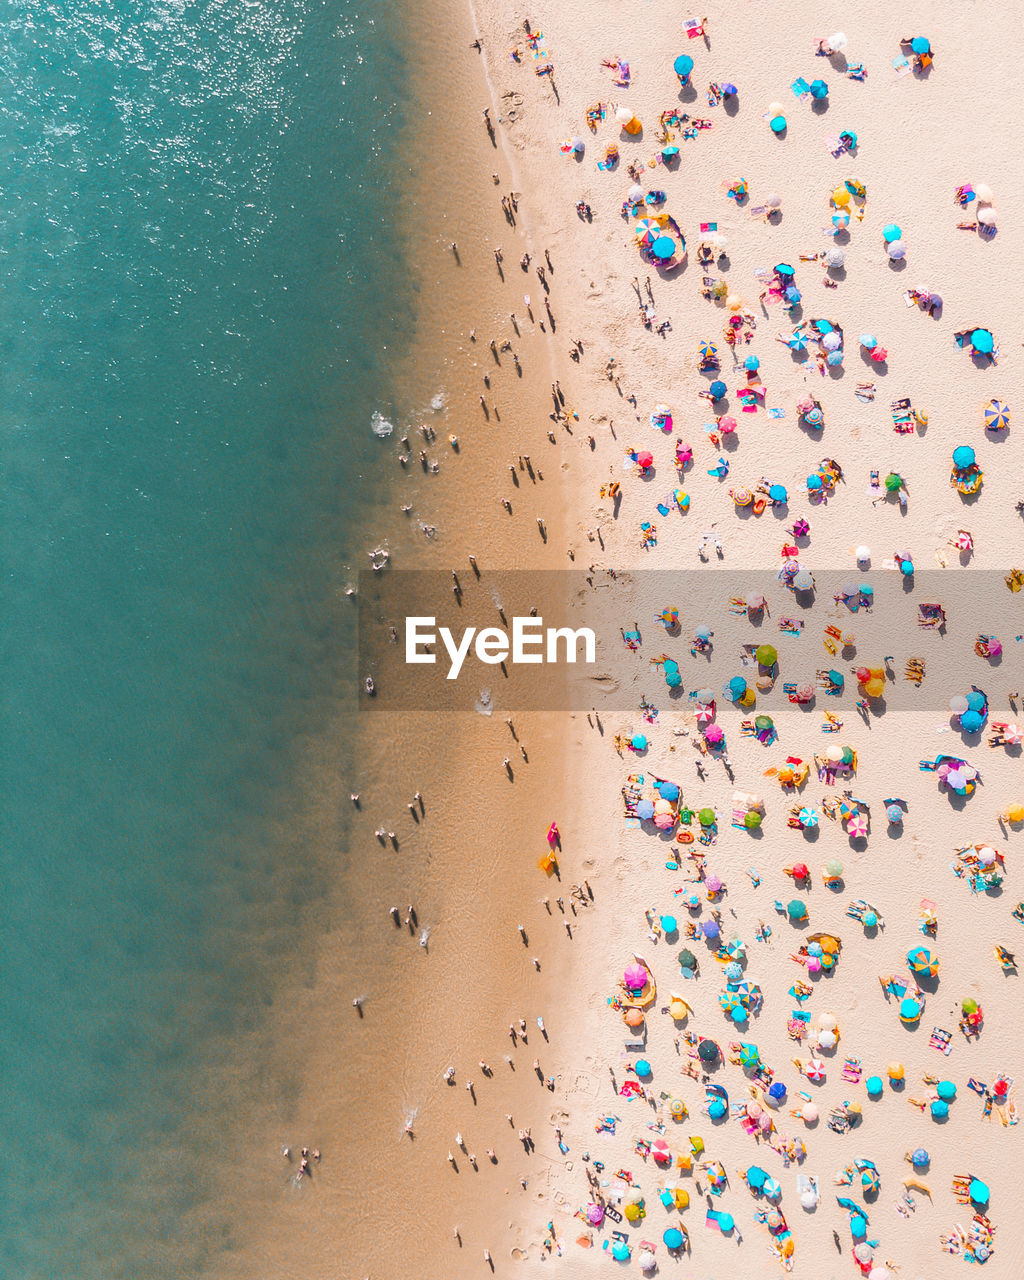 Drone Shot Of Colorful Parasols And People At Beach During Summer